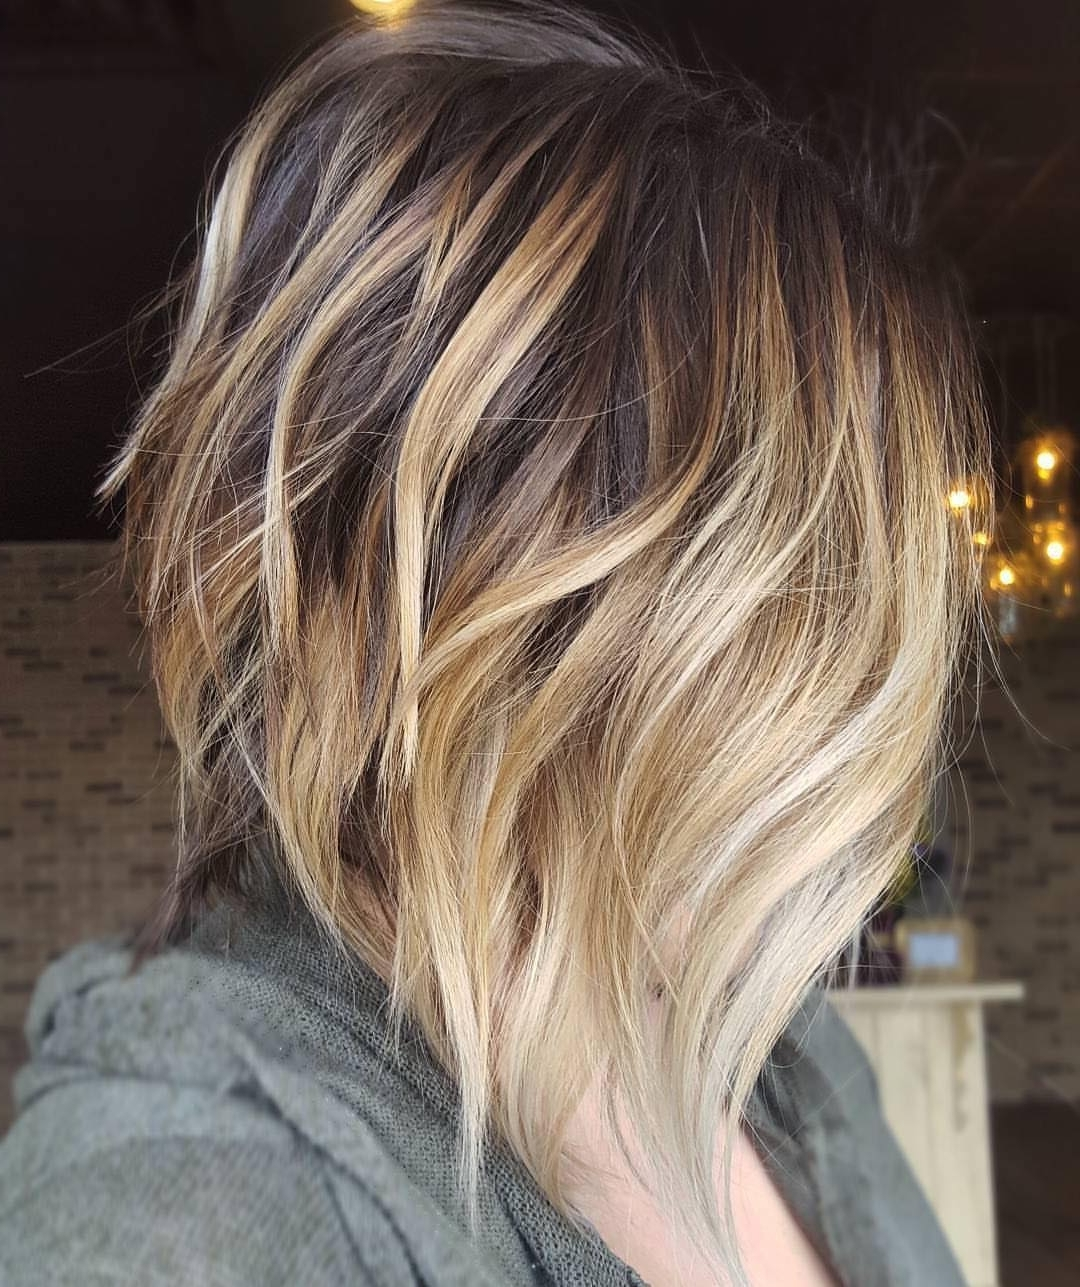 Most Up To Date Shaggy Chin Length Blonde Bob Hairstyles In 10 Cute Medium Hairstyles With Gorgeous Color Twists – Medium (View 15 of 20)